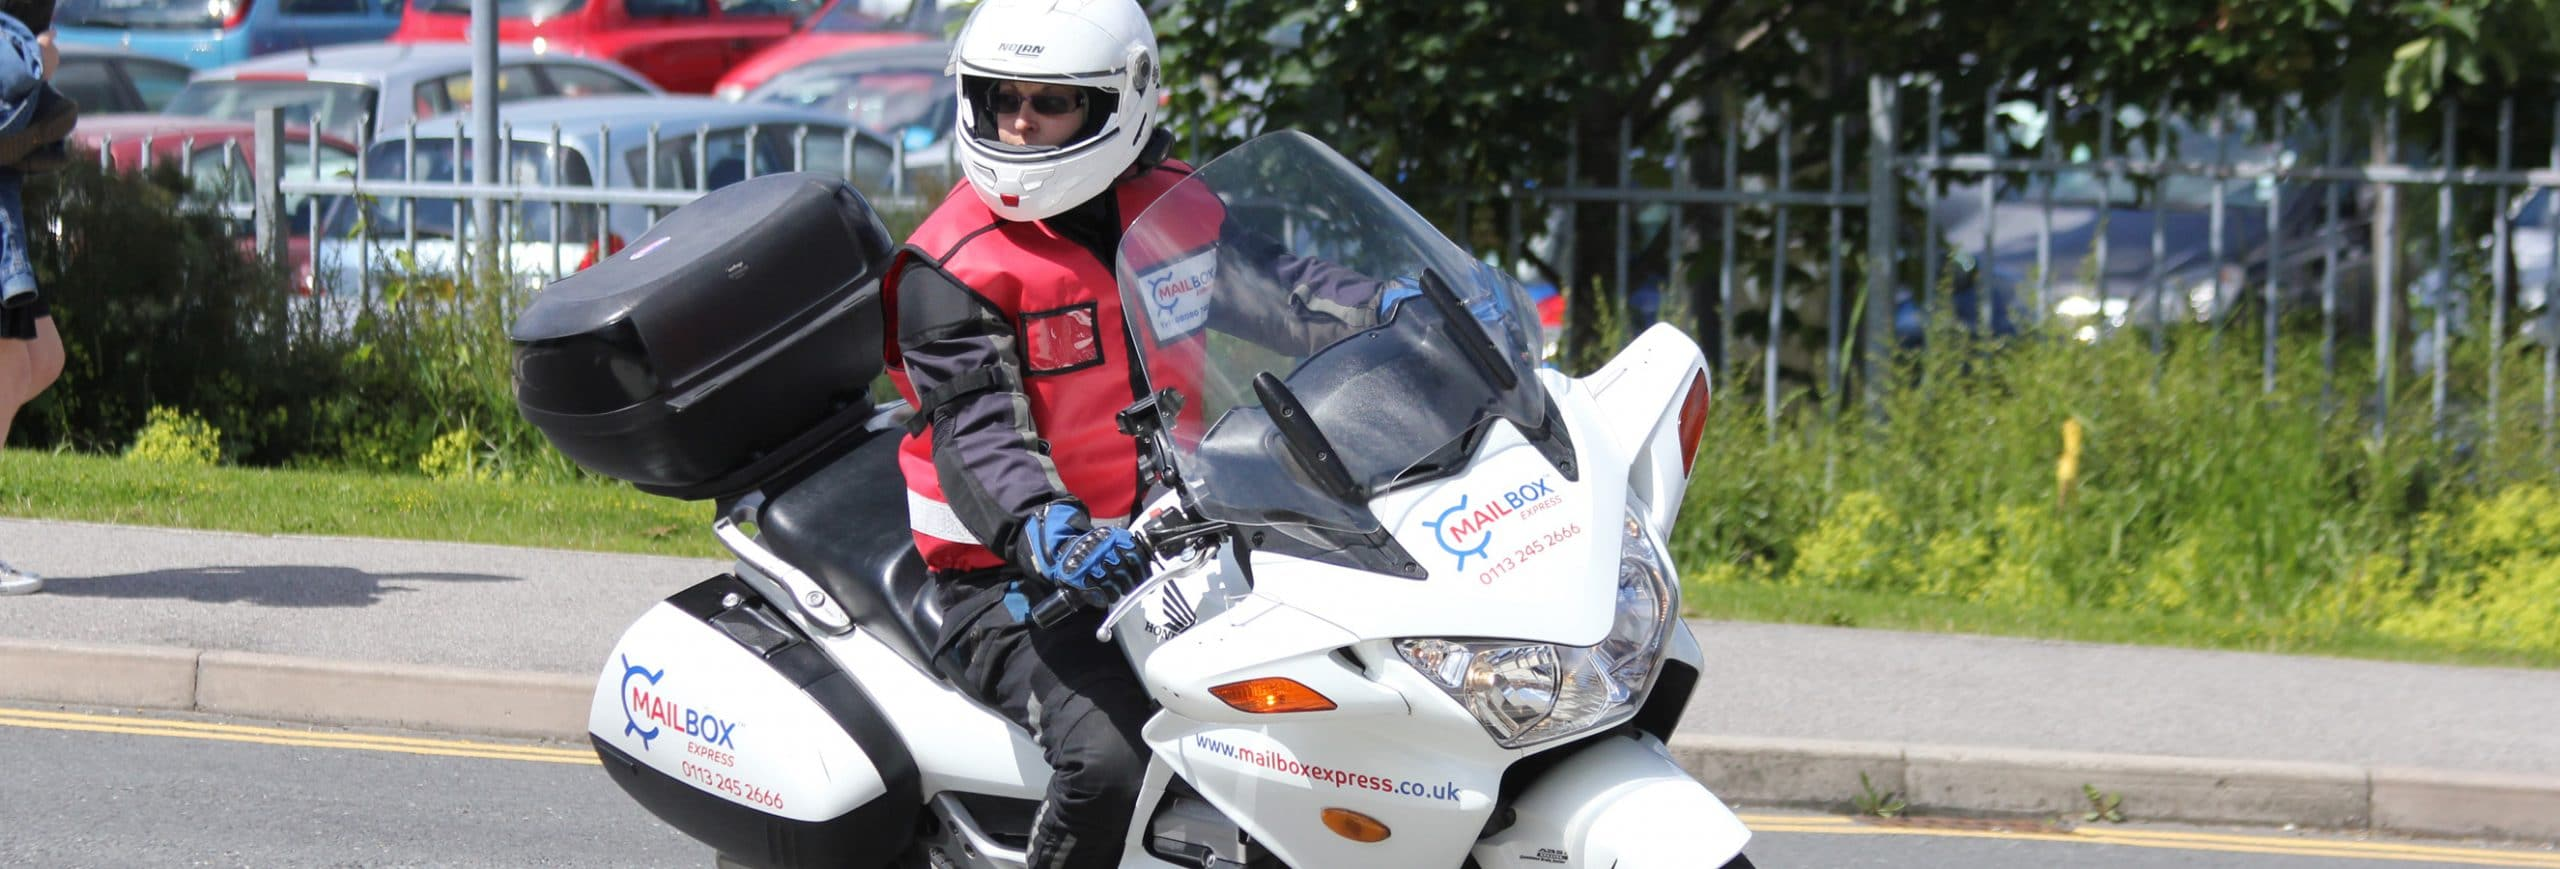 Man on motorbike branded with Mailbox Express